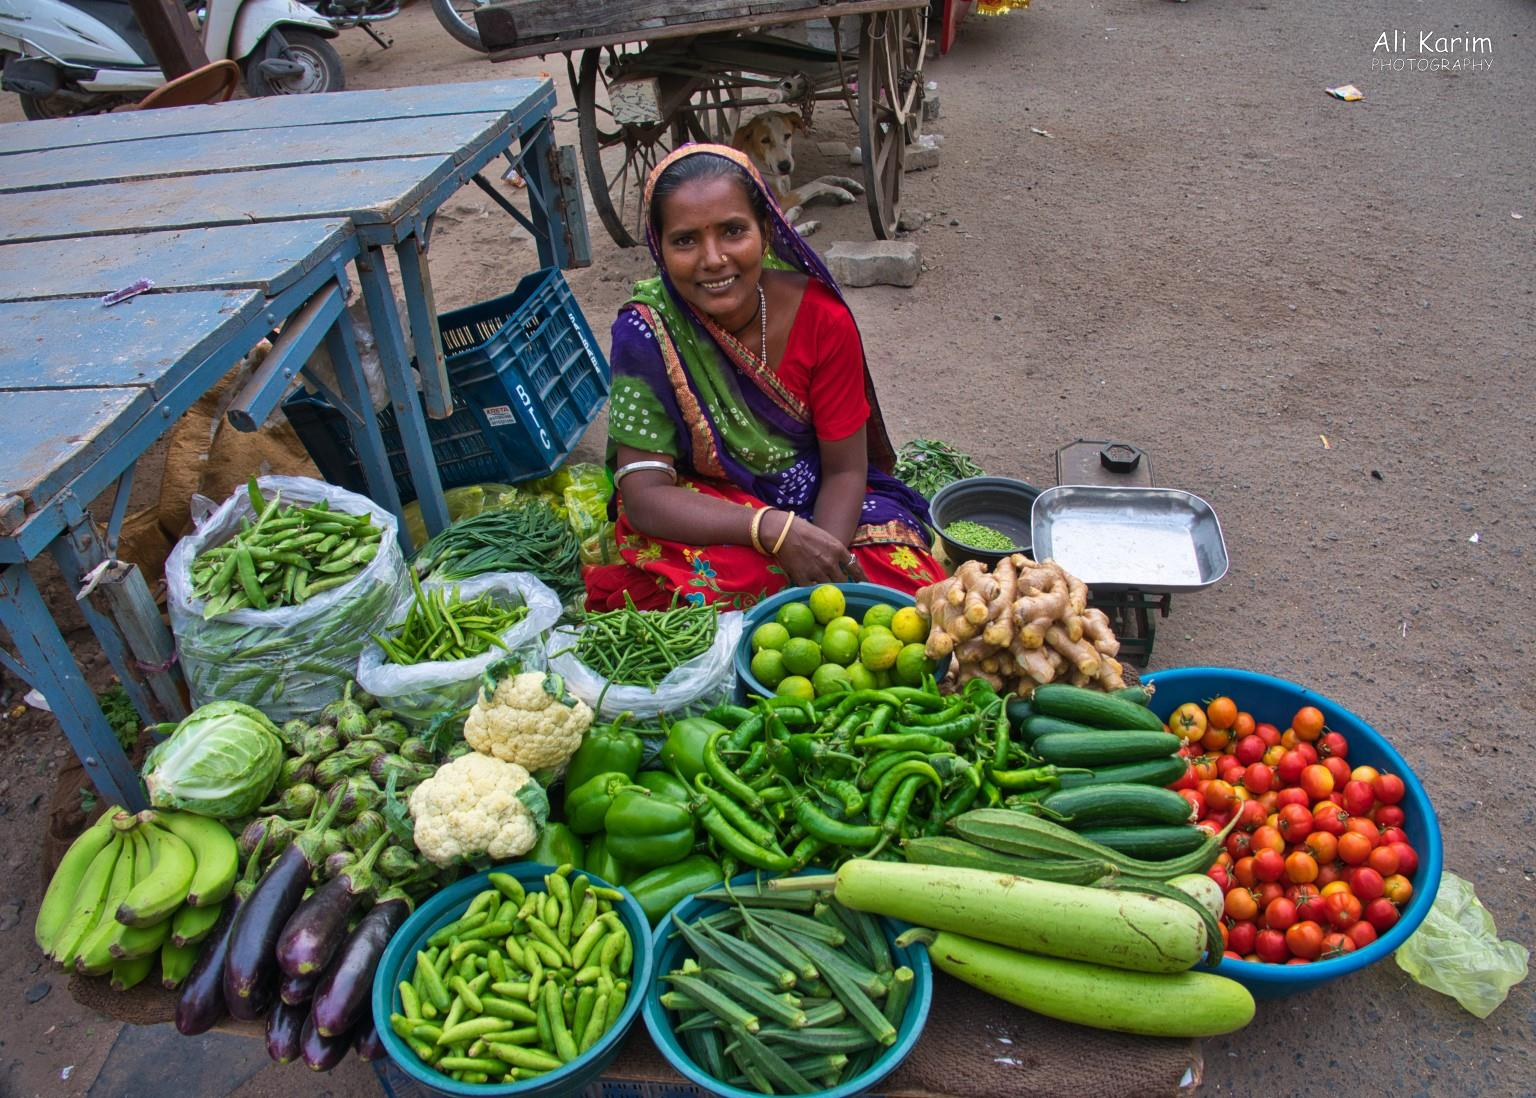 More Bhuj Happy vegetable seller outside the vegetable market in the heart of the old city